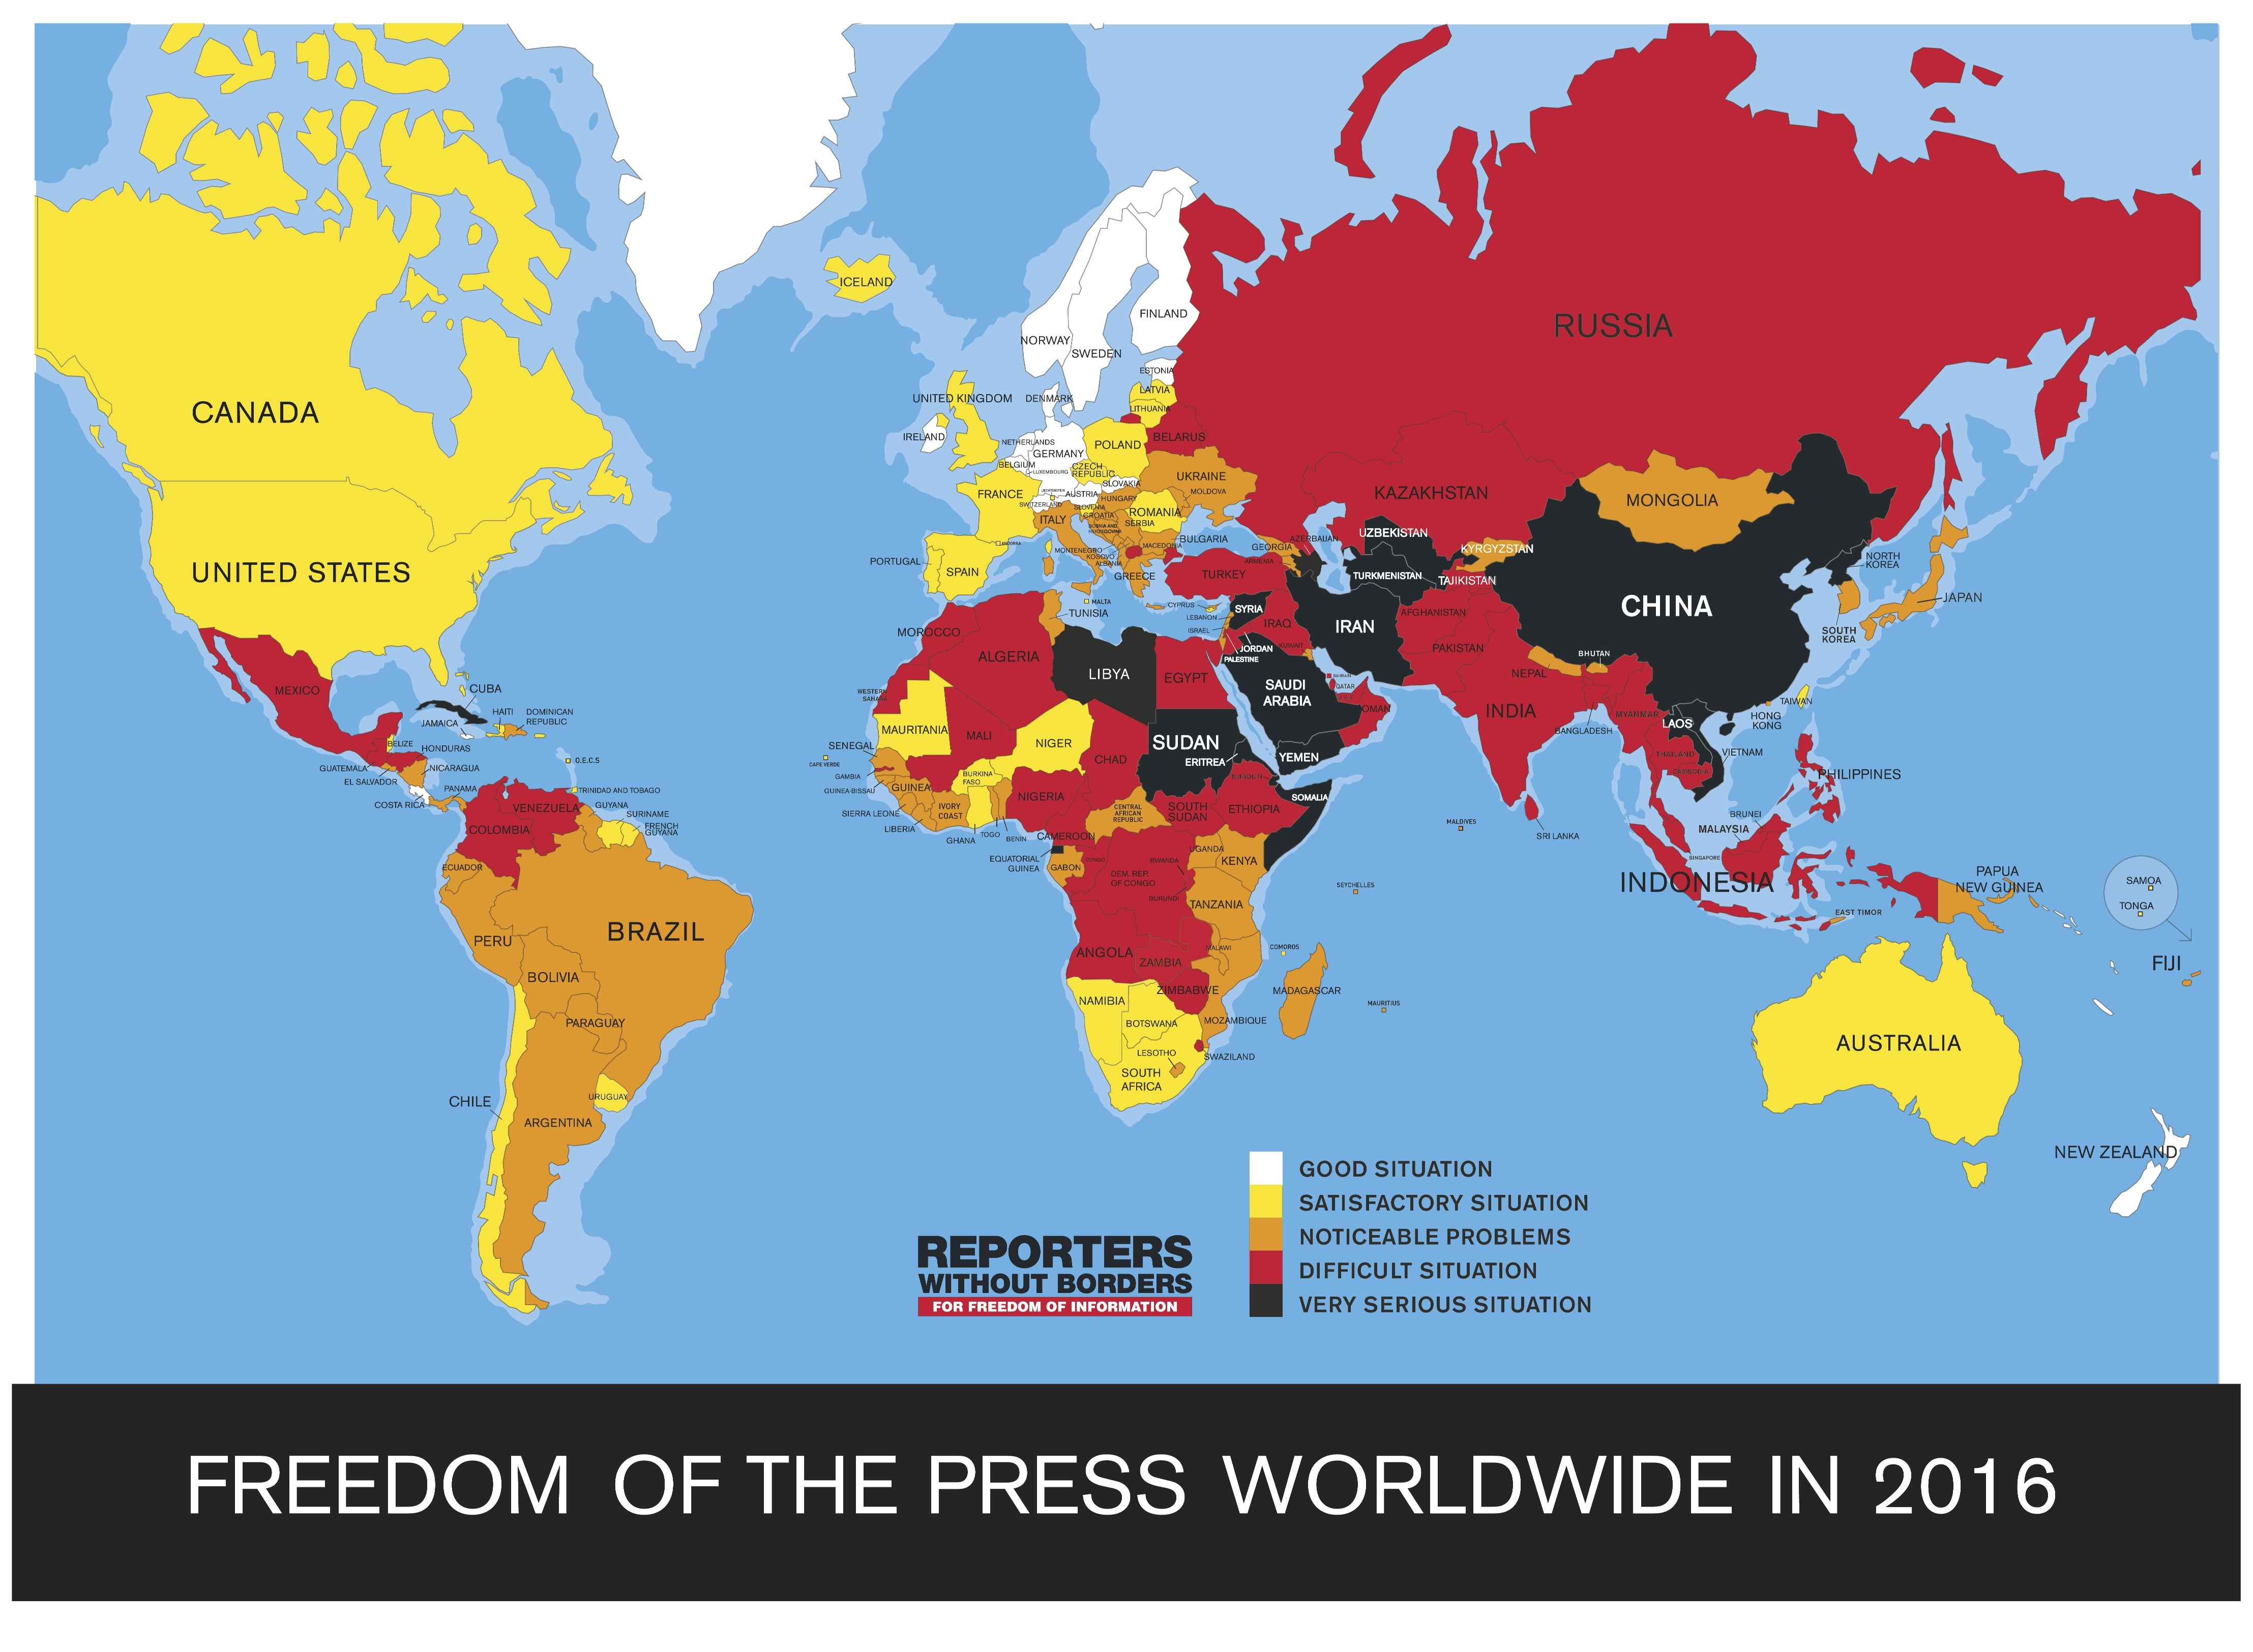 2016 world press freedom index mapped map mania pinterest freedom of press map 2017 by reporters without borders gumiabroncs Gallery